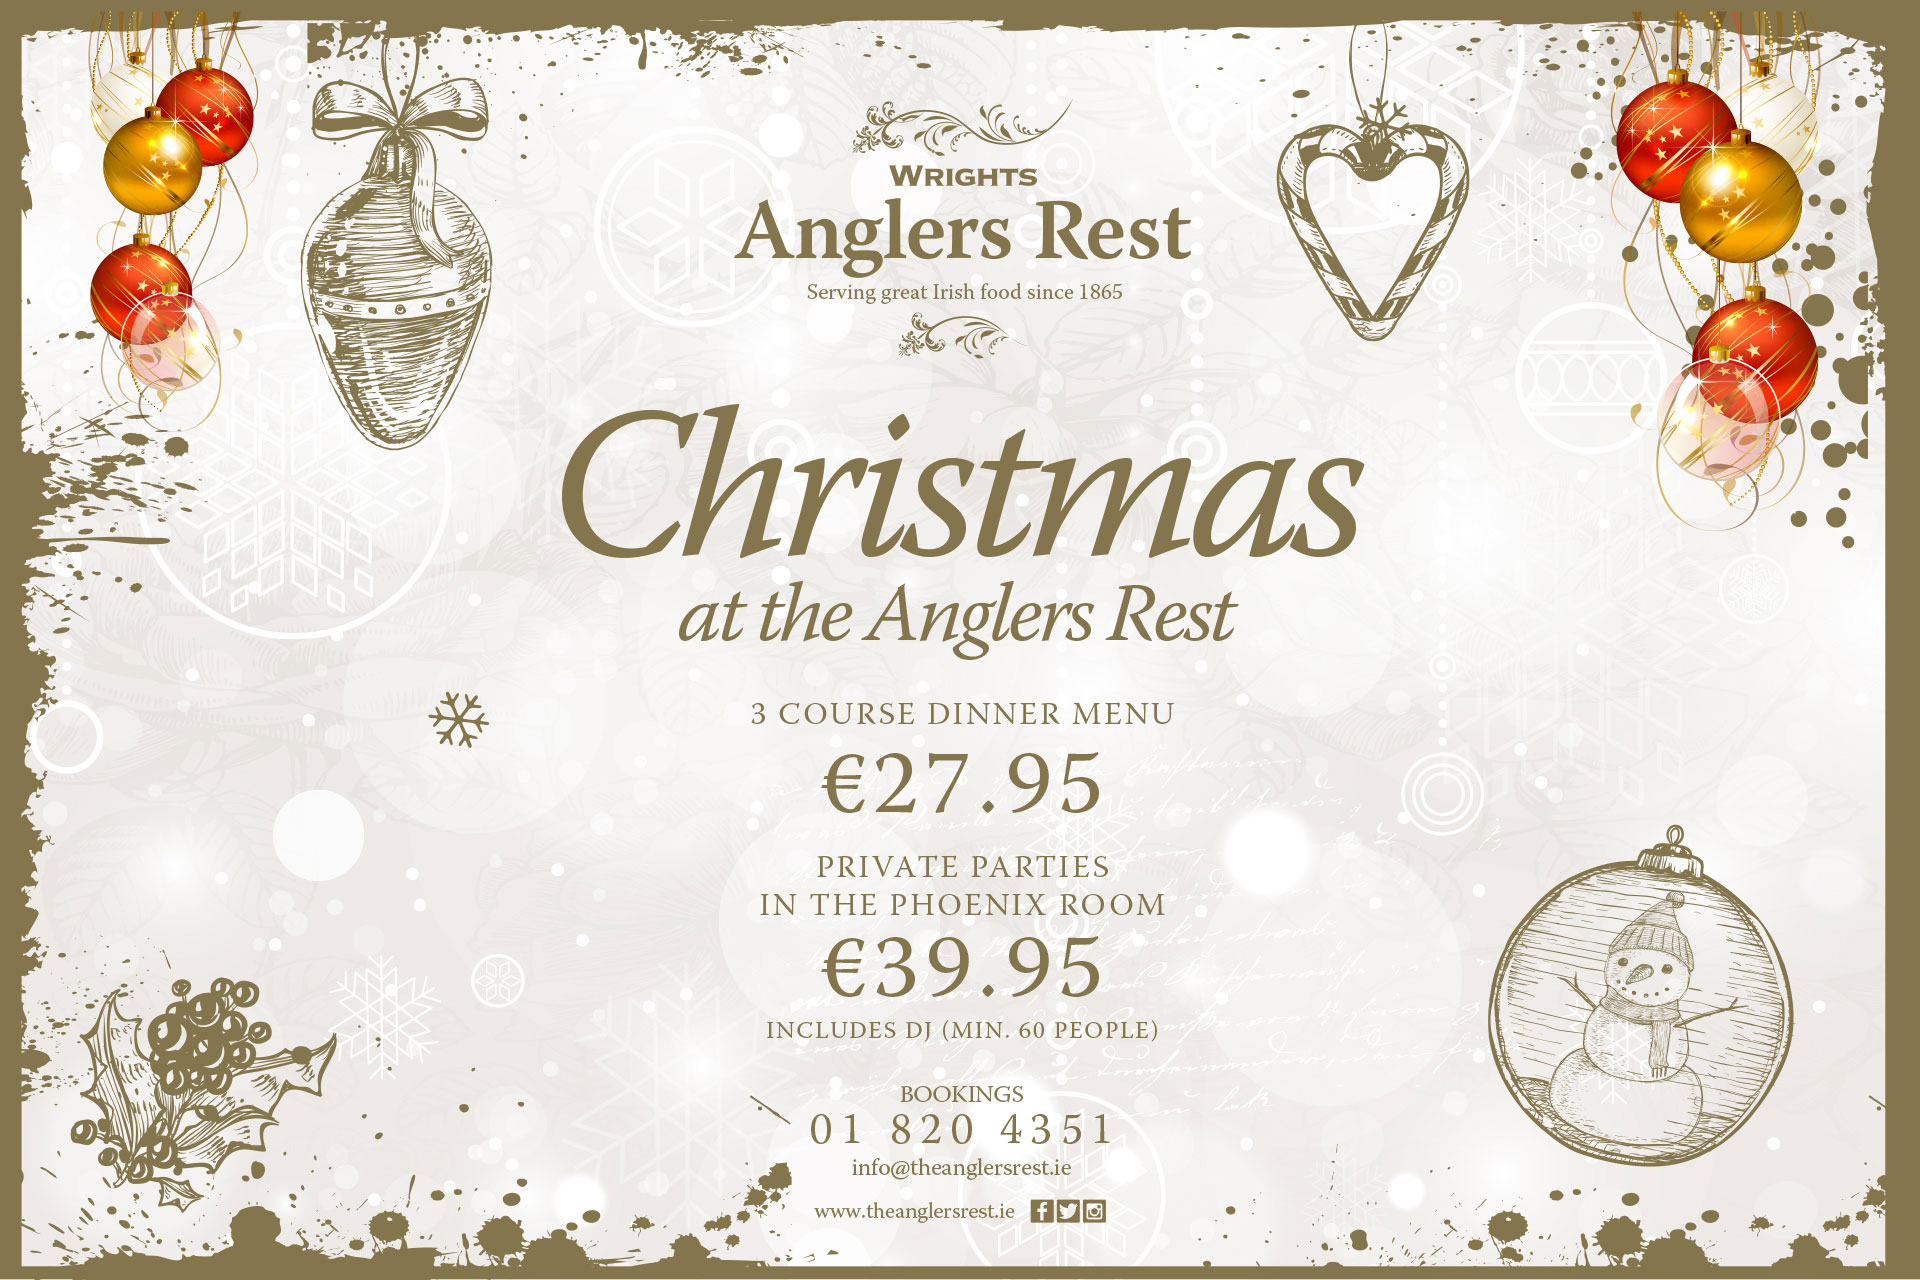 Anglers Rest Wrights Christmas Party